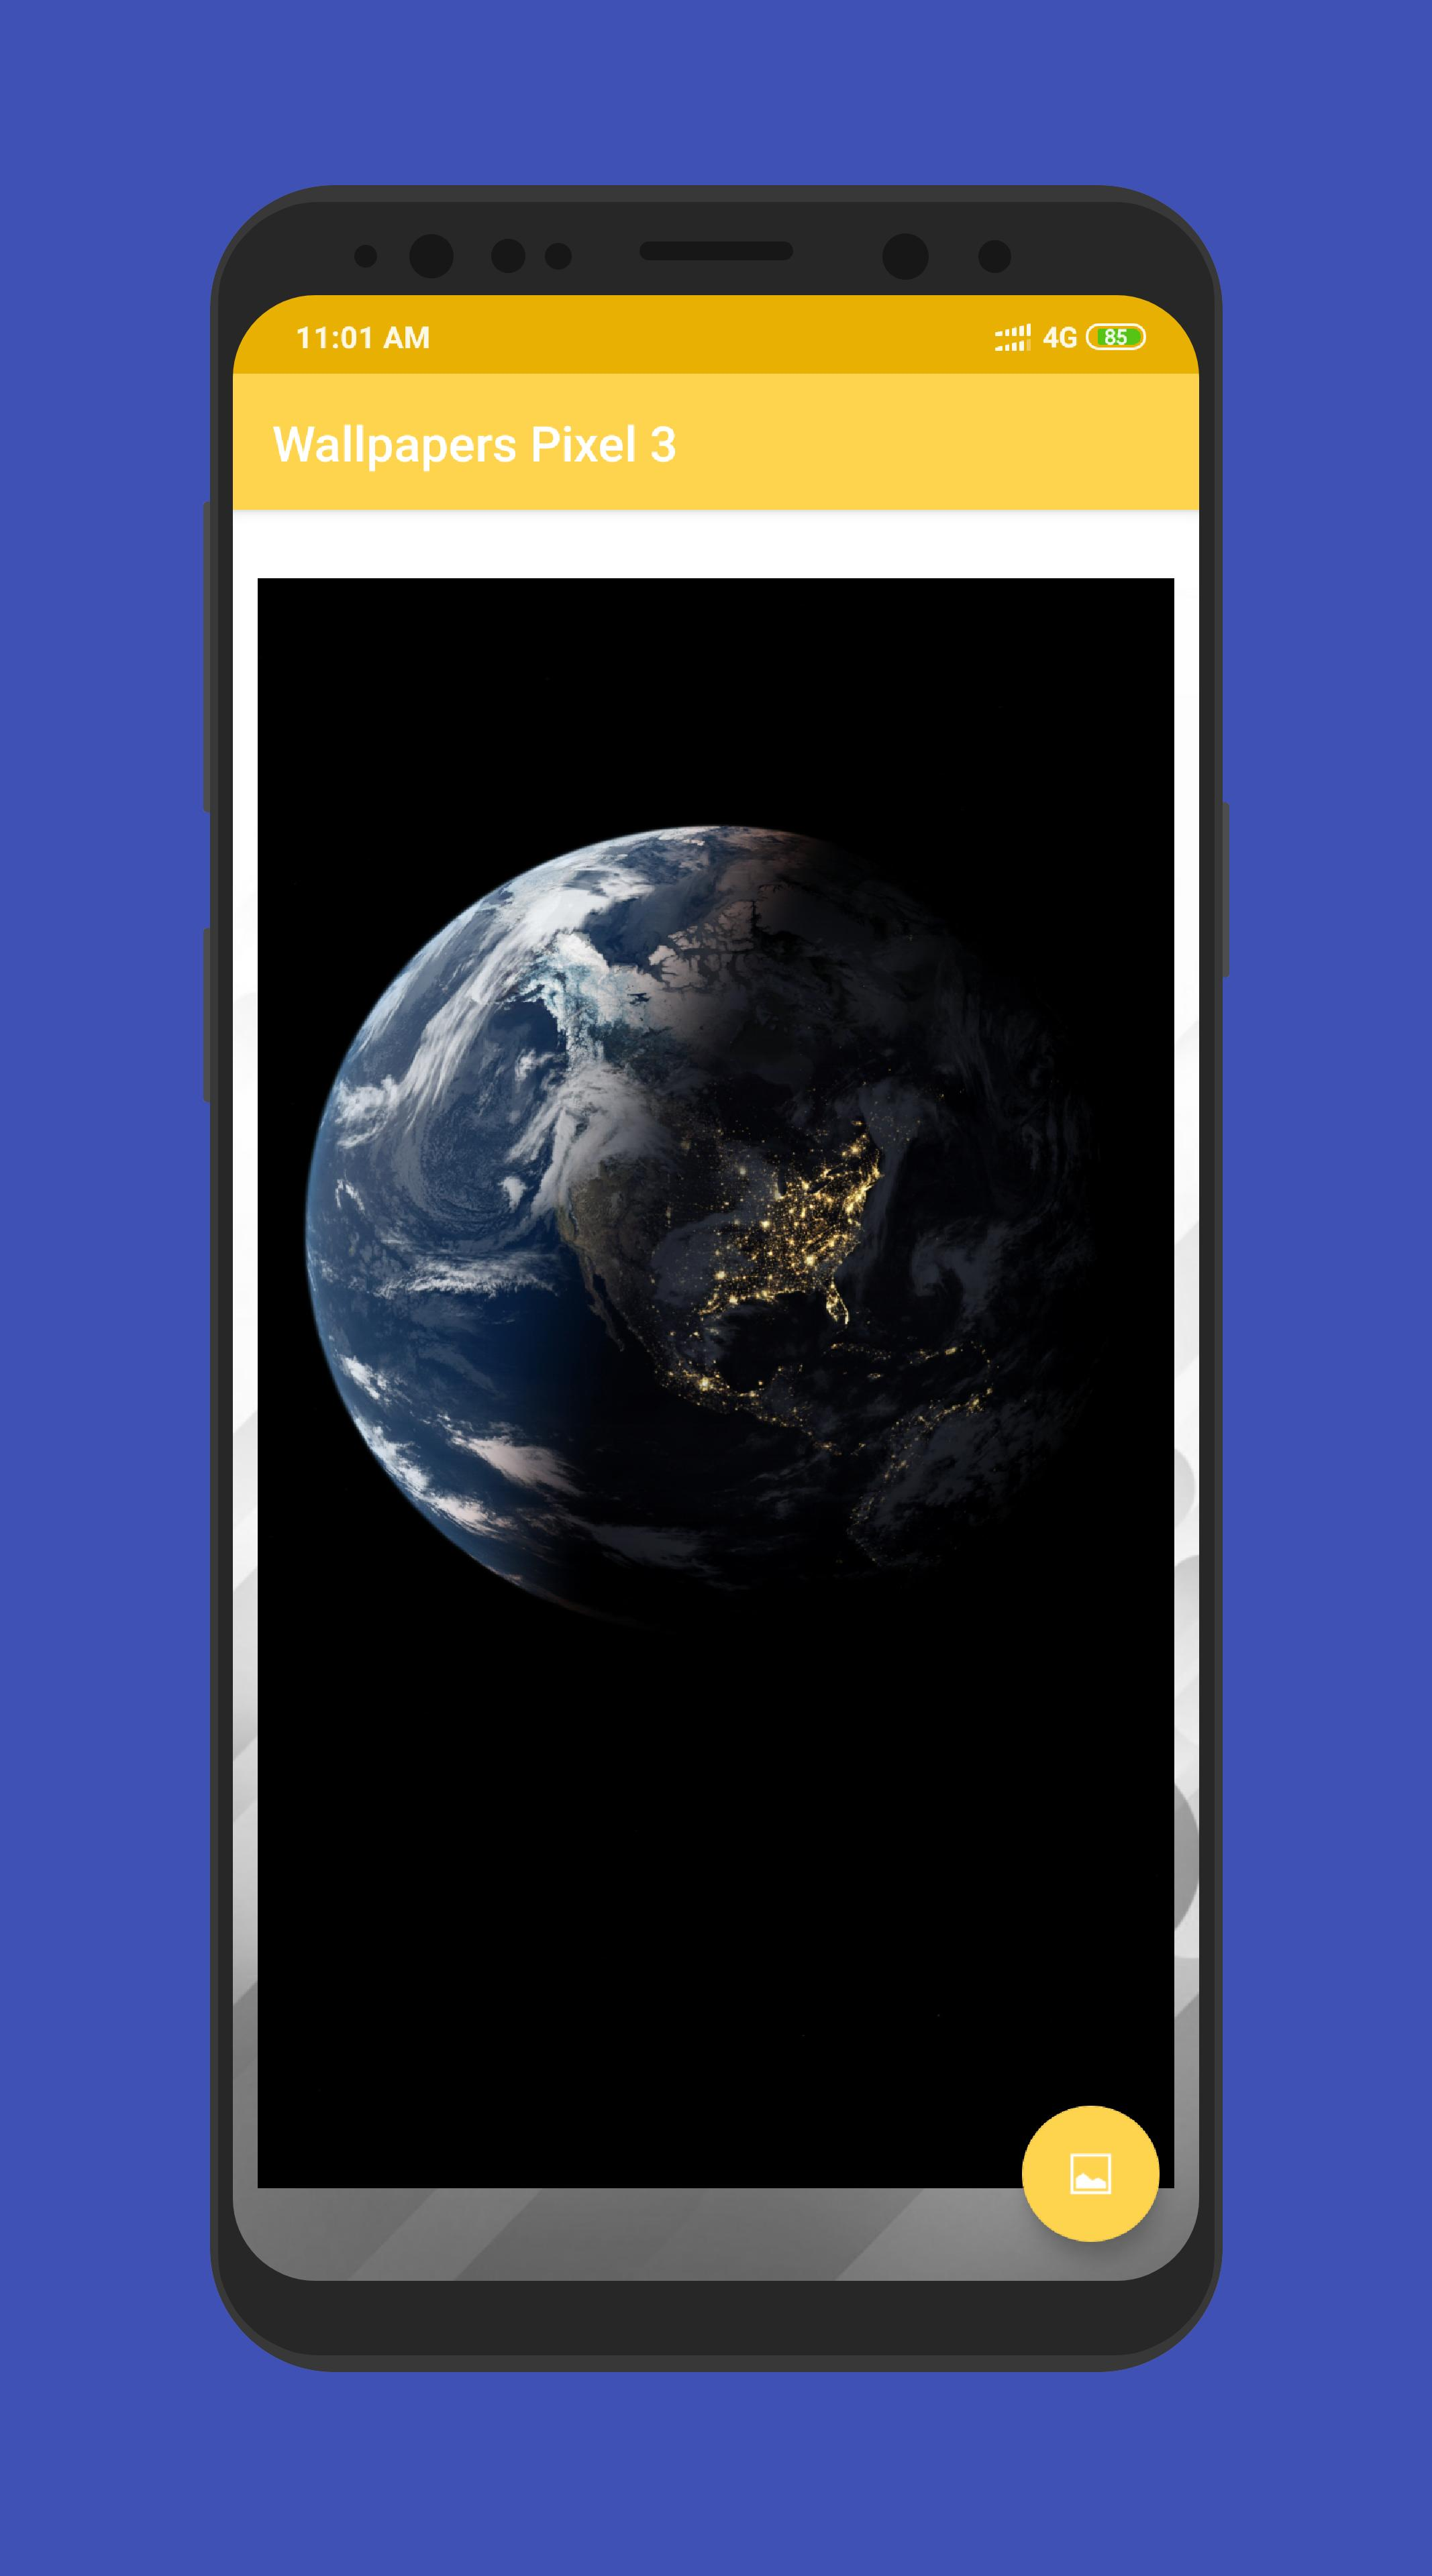 Wallpapers Pixel 3/3a for Android - APK Download